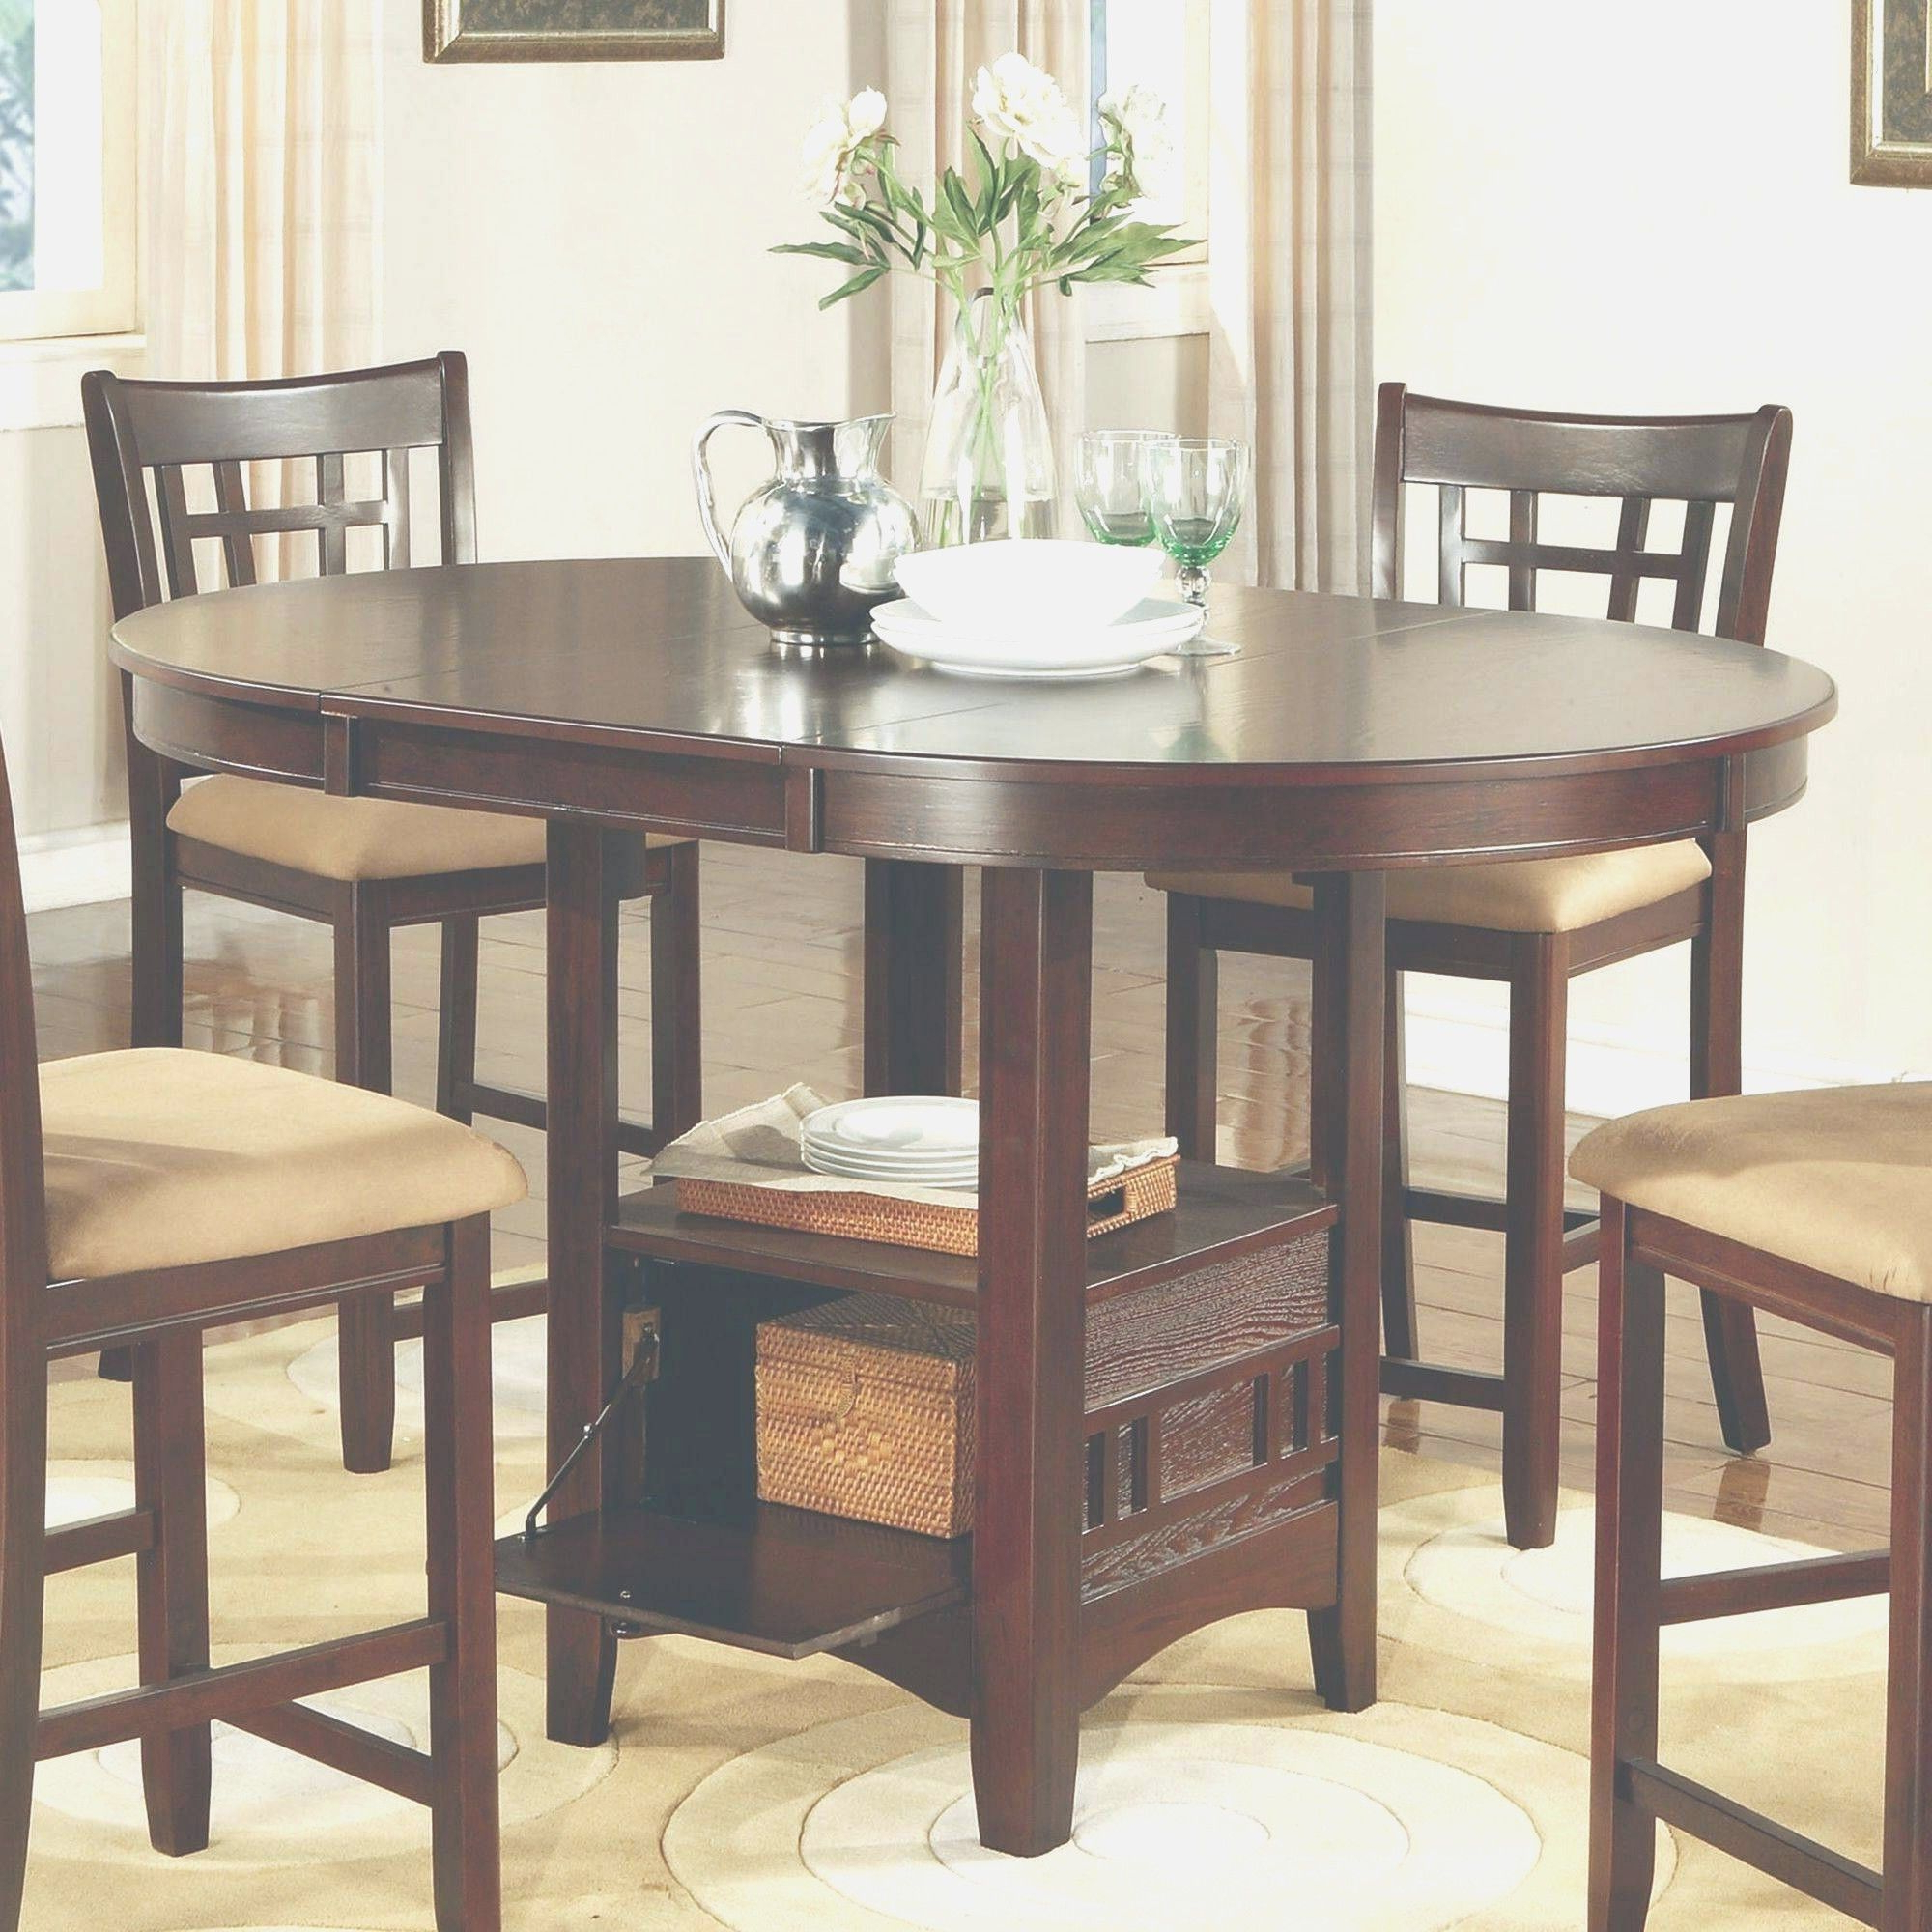 2019 Heavy Duty Kitchen Chairs – Heavy Duty Kitchen Chairs, Heavy Duty Inside Ephraim 5 Piece Dining Sets (View 8 of 25)